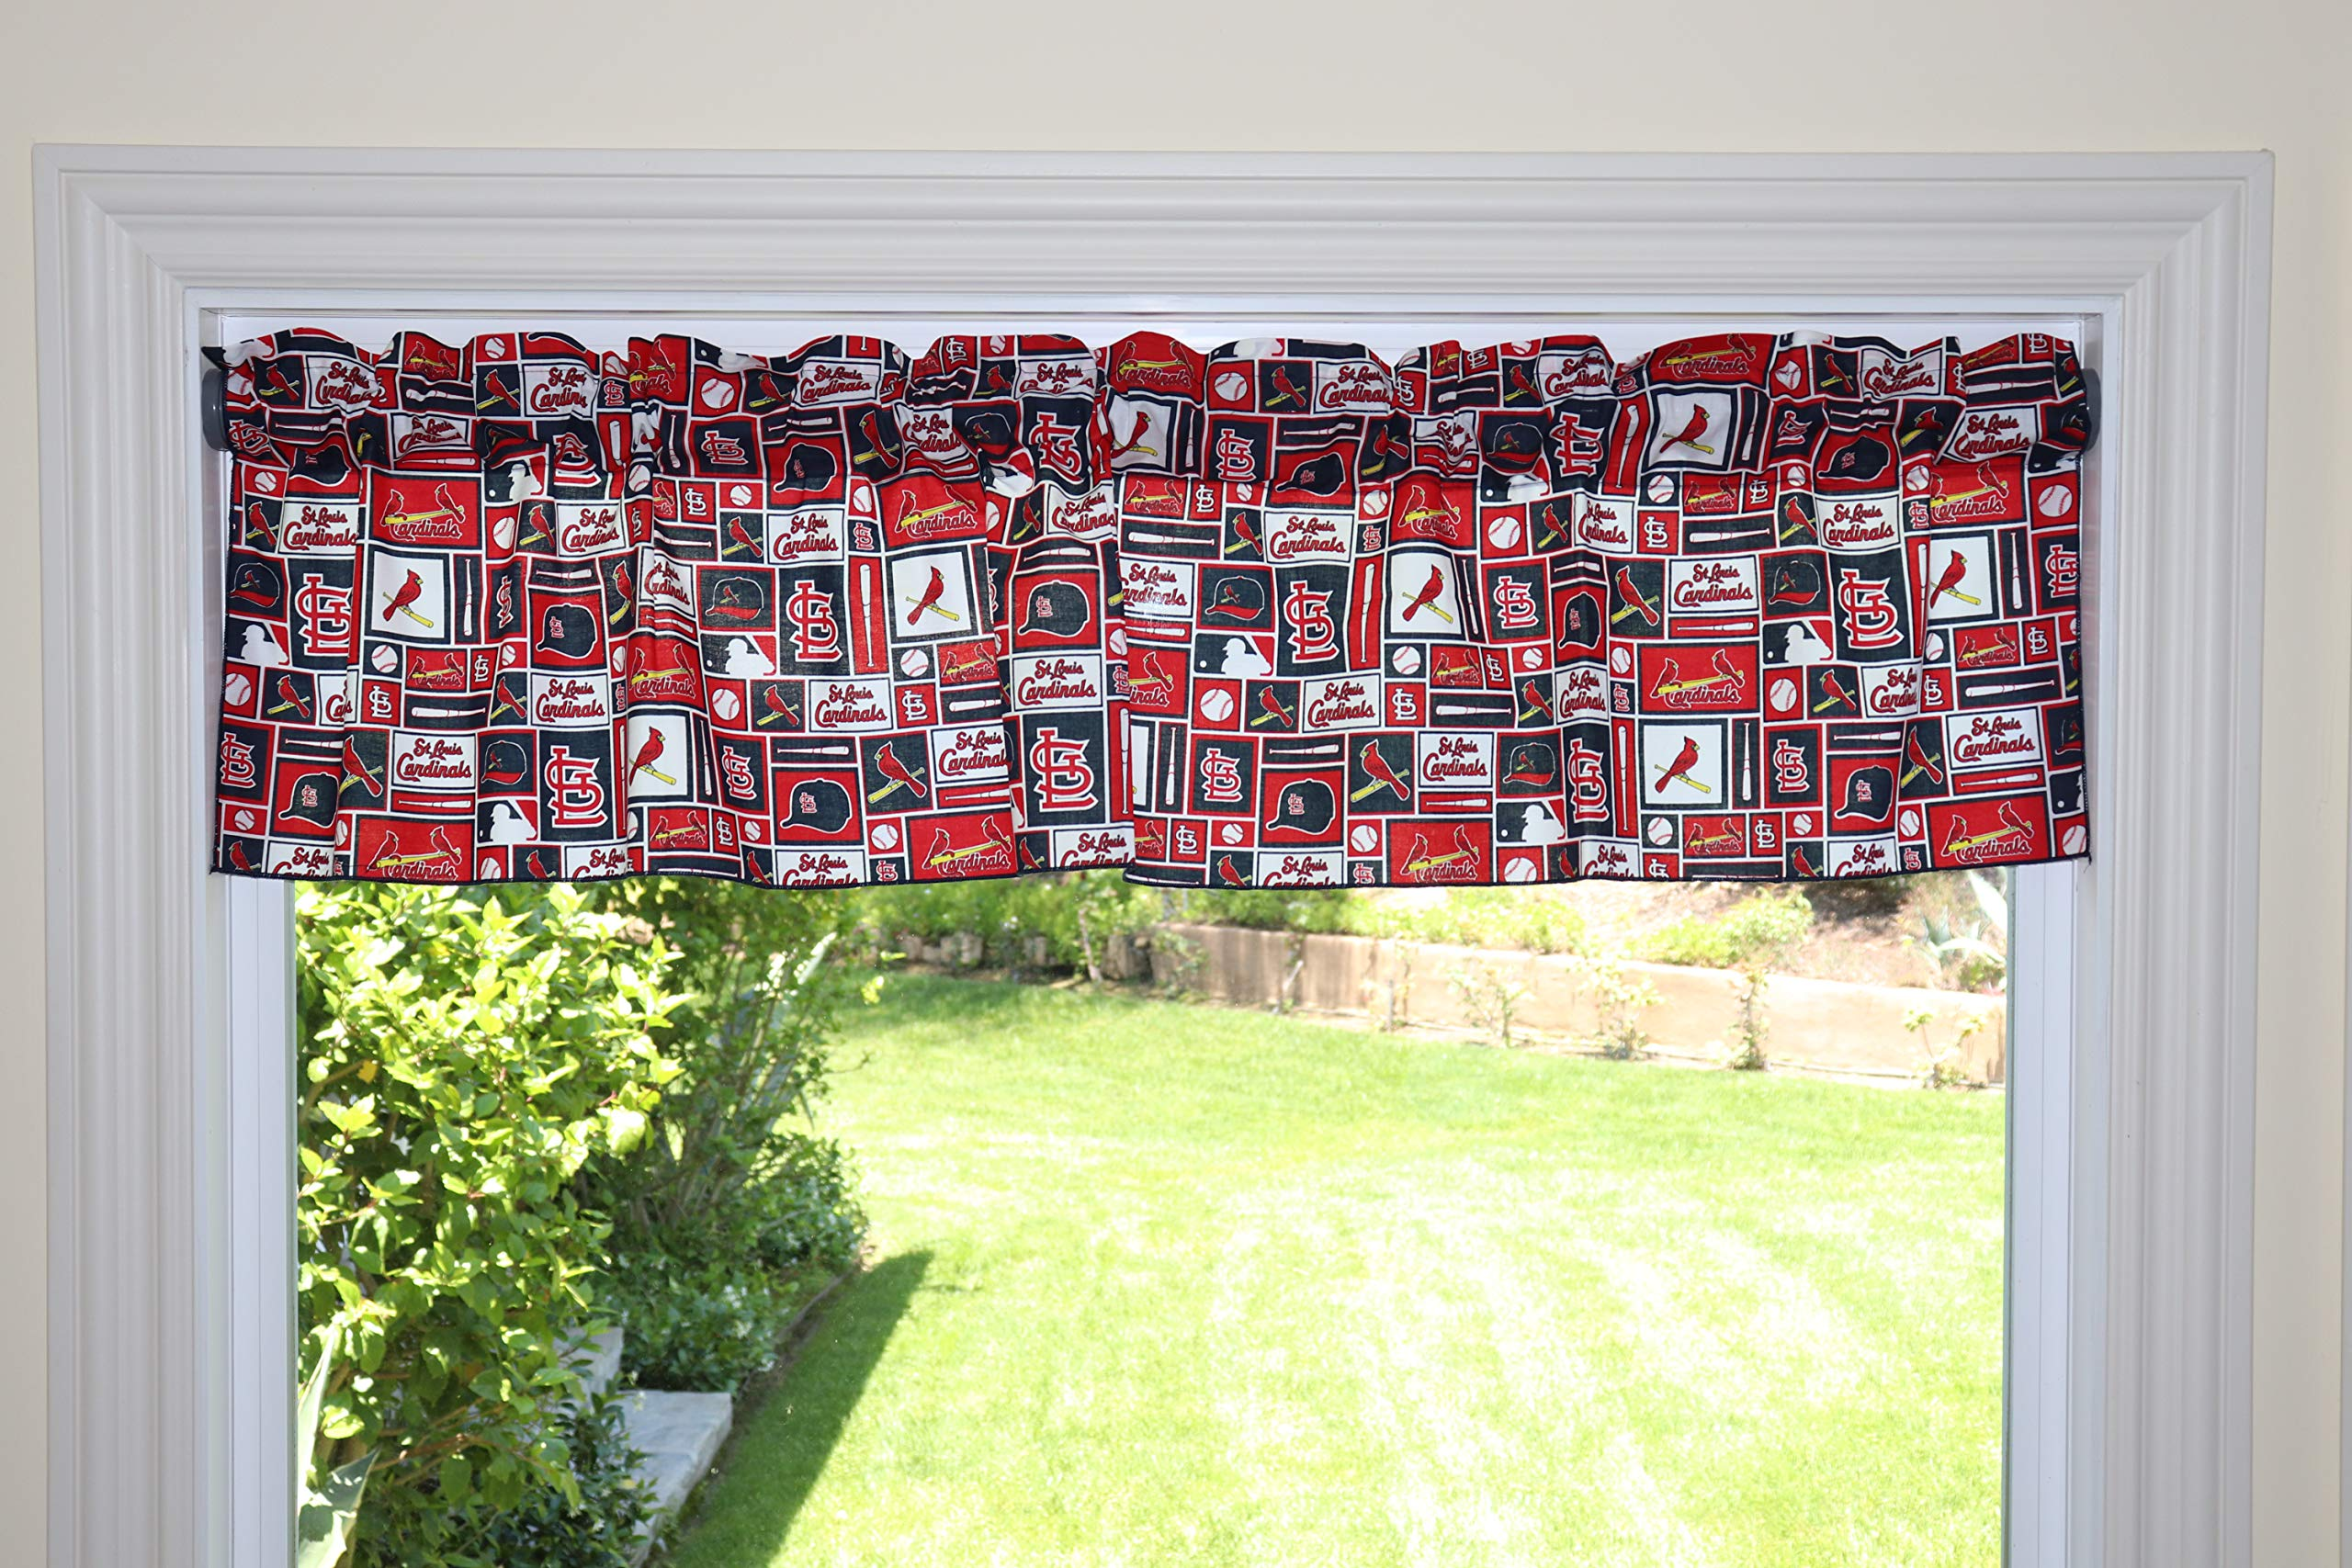 lovemyfabric Baseball Cotton Window Valance 100% Cotton Print MLB Sports Team St. Louis Cardinals Events Kitchen Dining Room Bedroom Window Decor (58'' Wide) (14'' Tall, Patchwork) by lovemyfabric